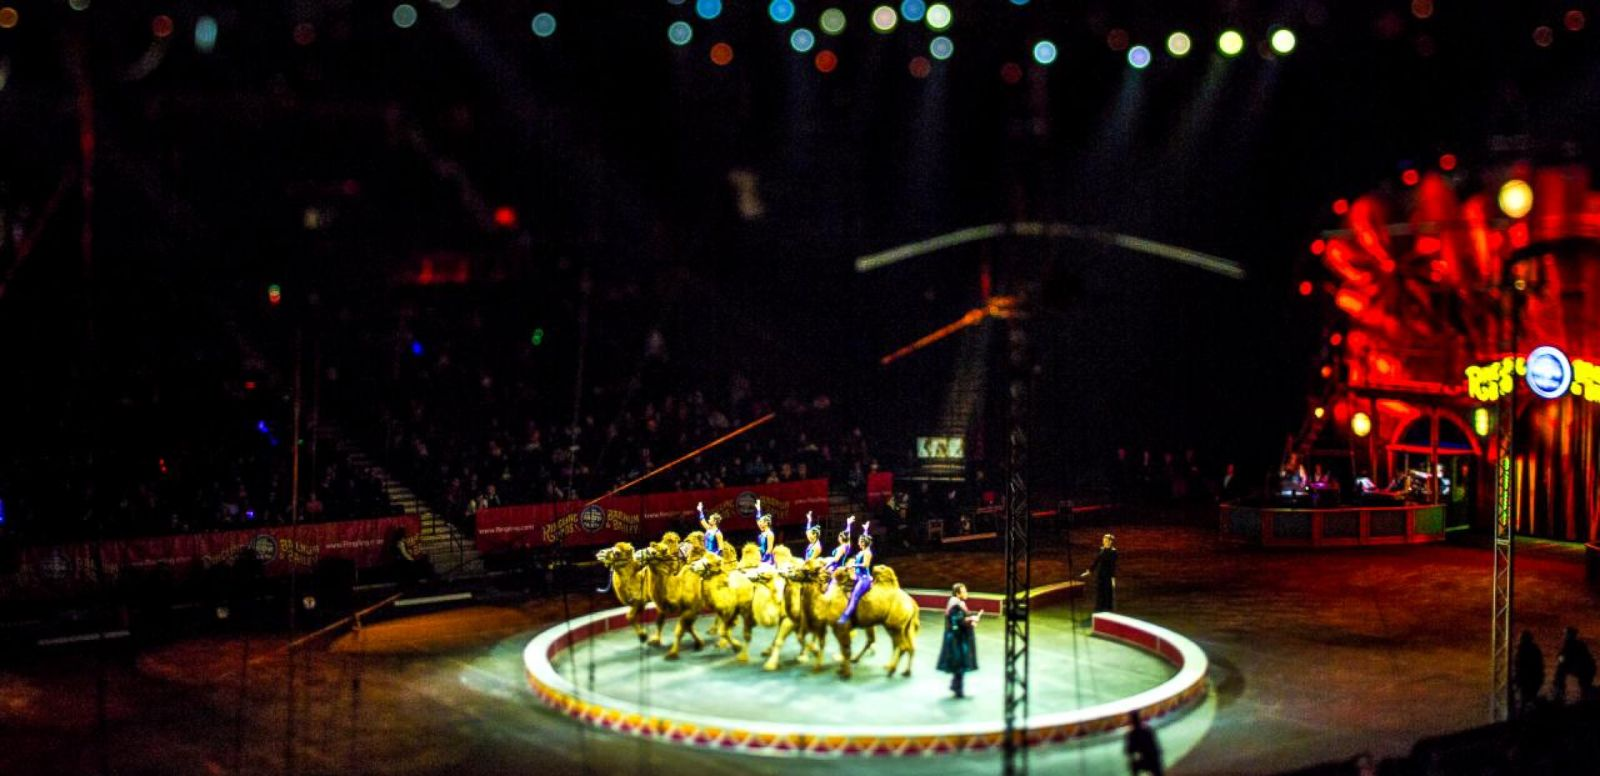 VIDEO: Ringling Bros. and Barnum & Bailey's Circus Xtreme: Tiny Edition